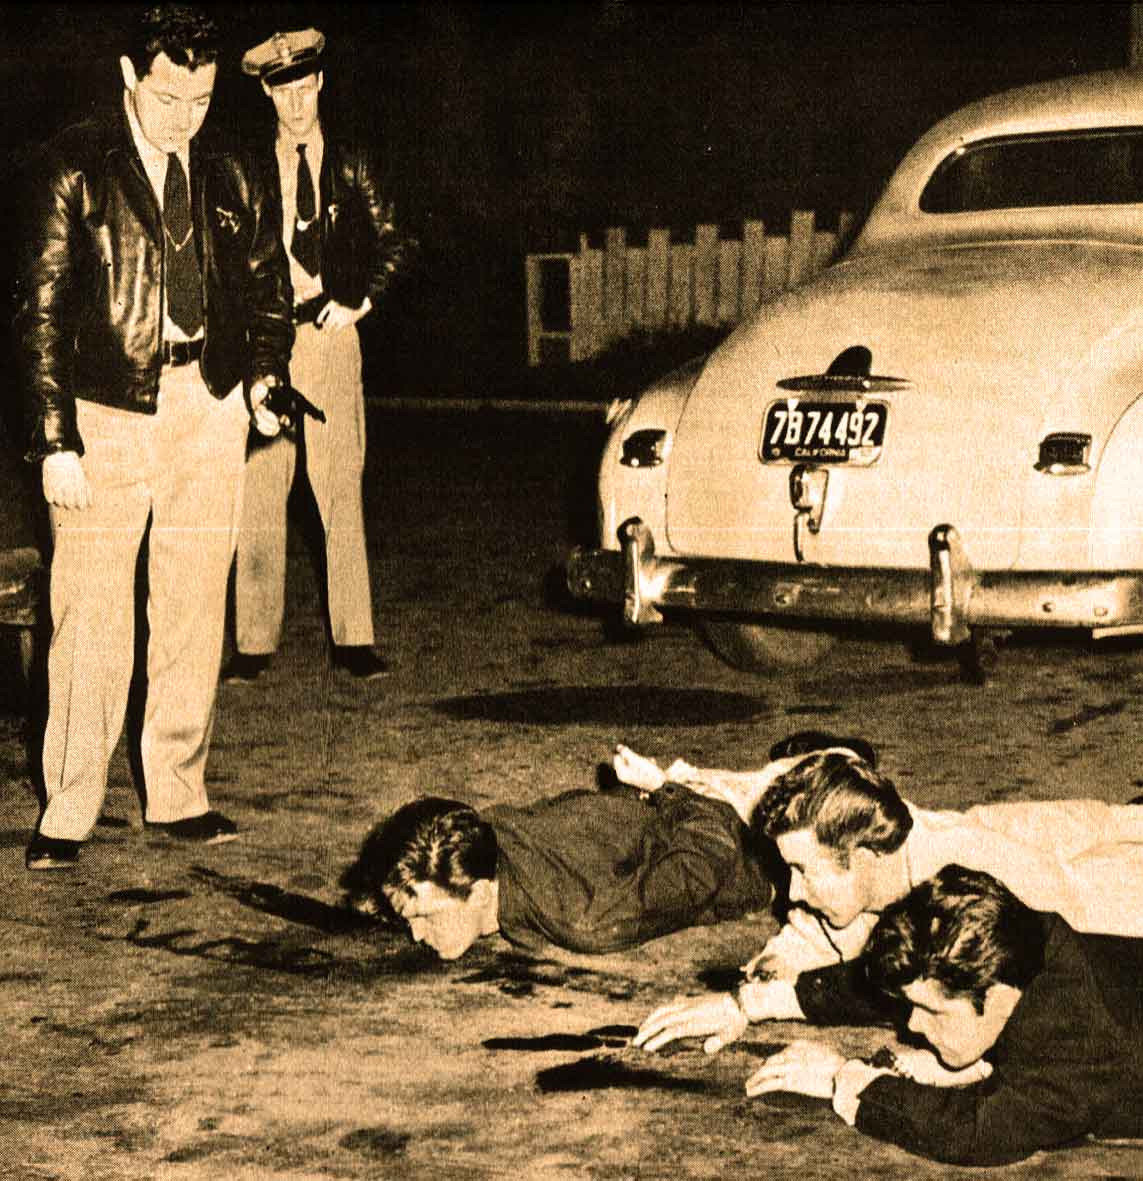 Juvenile-Delinquents-1950s-resize.jpg